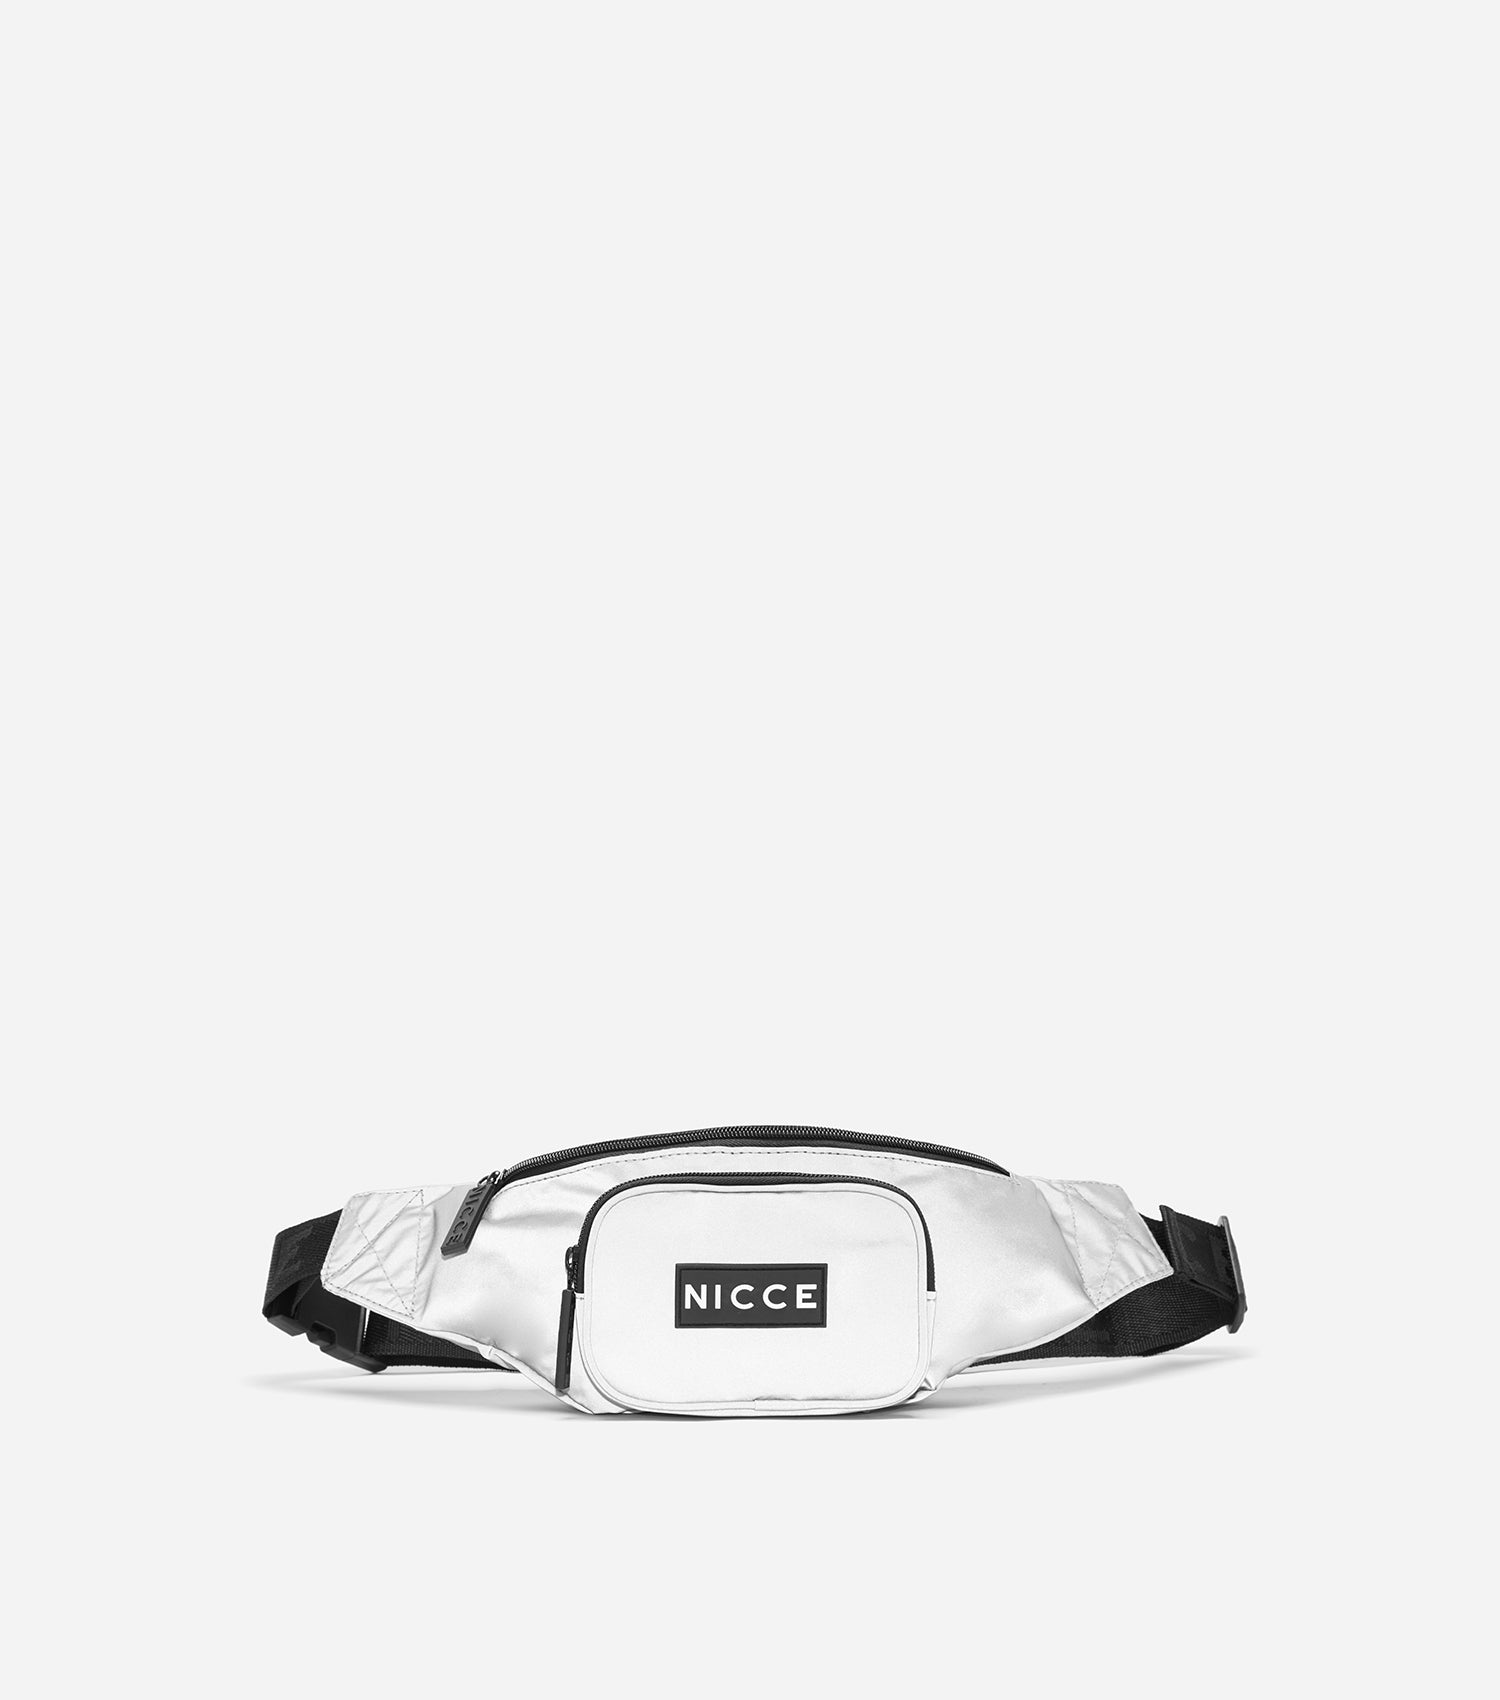 NICCE Bum Bag | Reflective, Bags